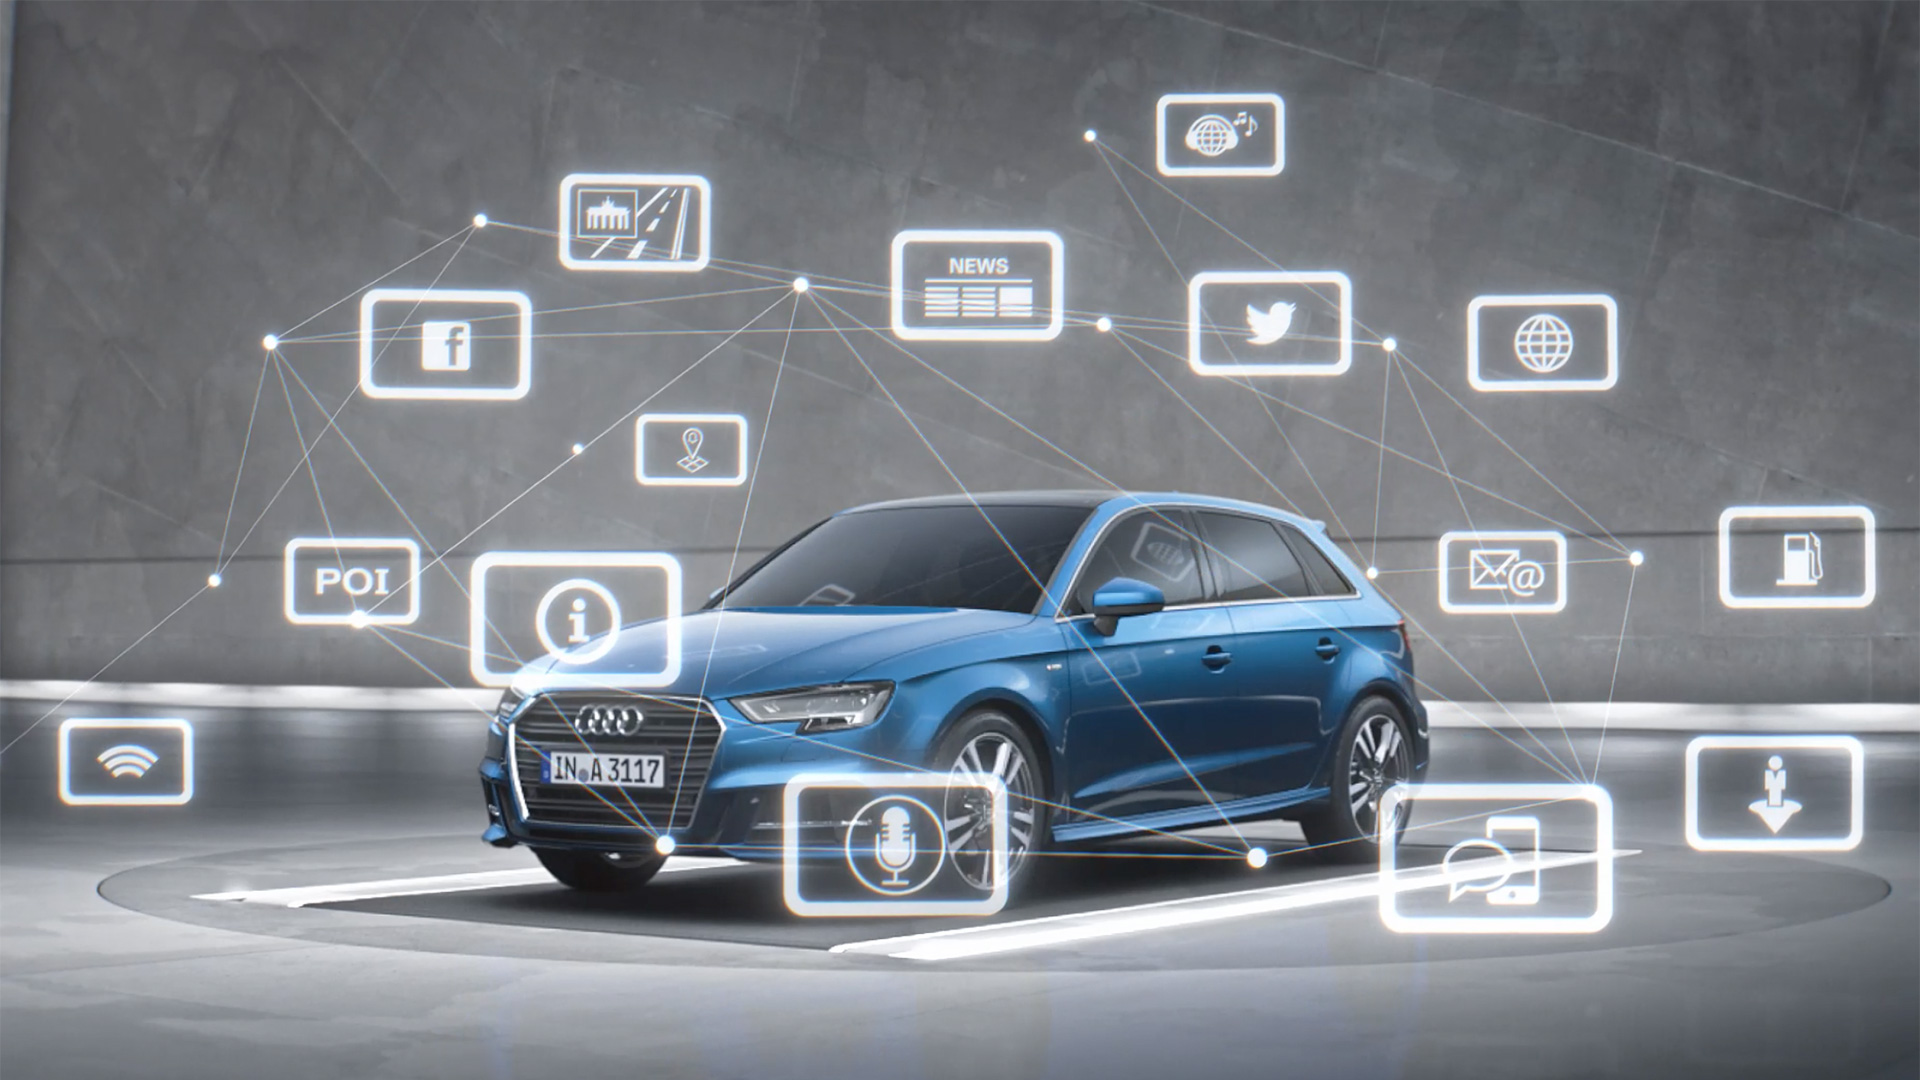 1920x1080 160513 AUDI HL Connectivity MASTER